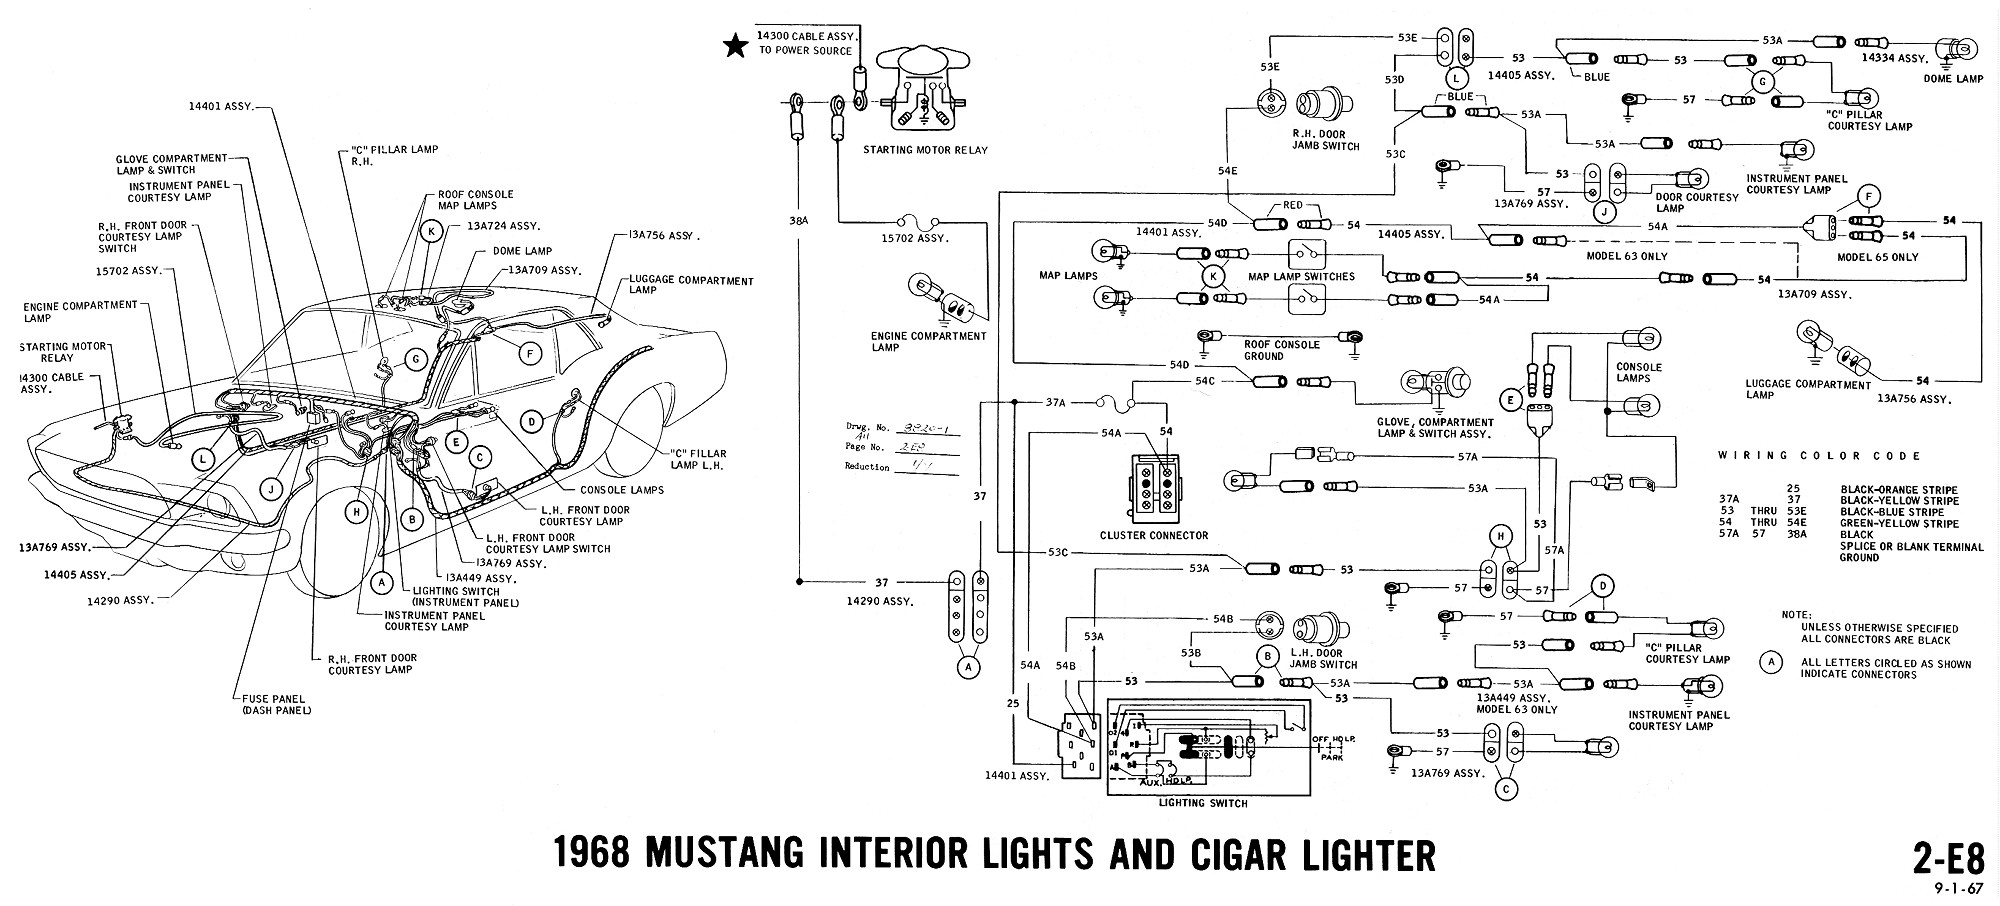 1968 mustang wiring diagram interior lights cigar lighter 1968 mustang wiring diagram 1966 mustang wiring diagrams \u2022 free 66 mustang ignition wiring diagram at soozxer.org